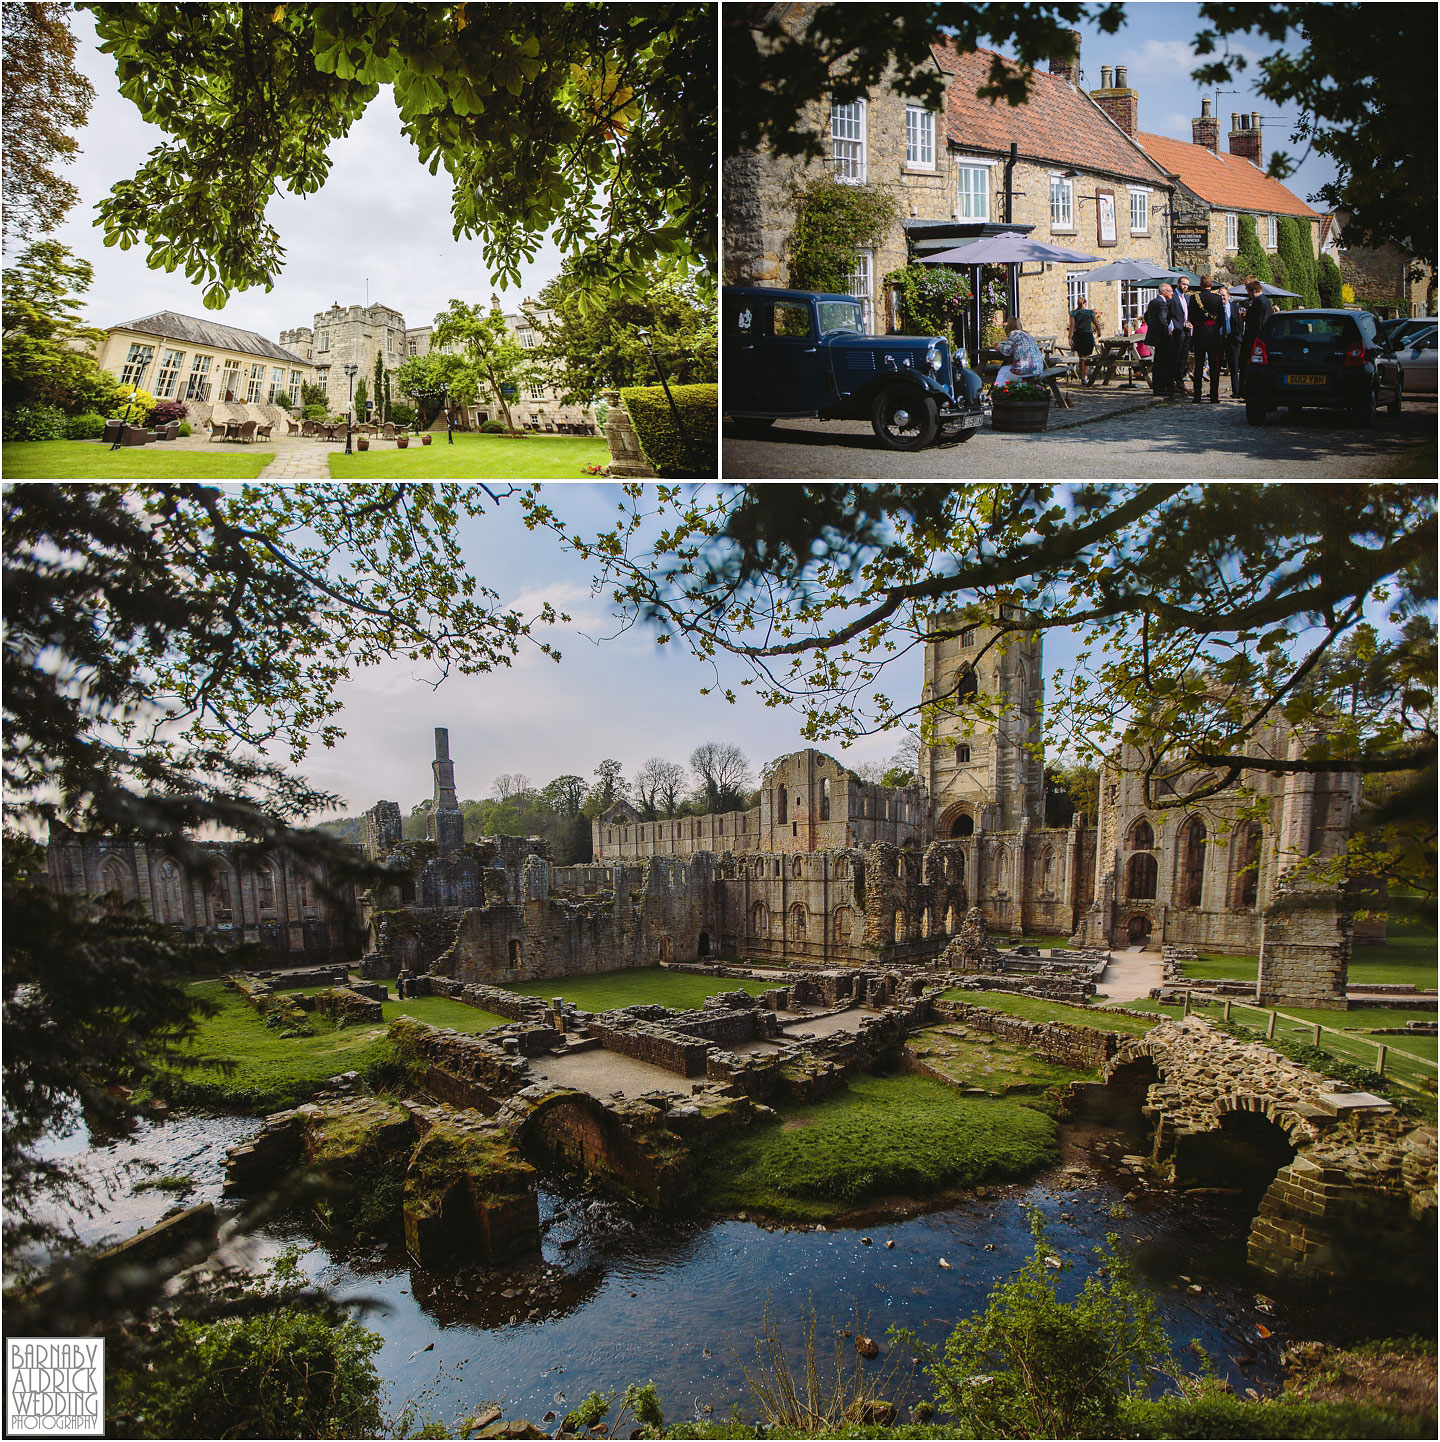 A photograph showing the beautiful Yorkshire wedding venues of Fountains Abbey and Hazlewood Castle